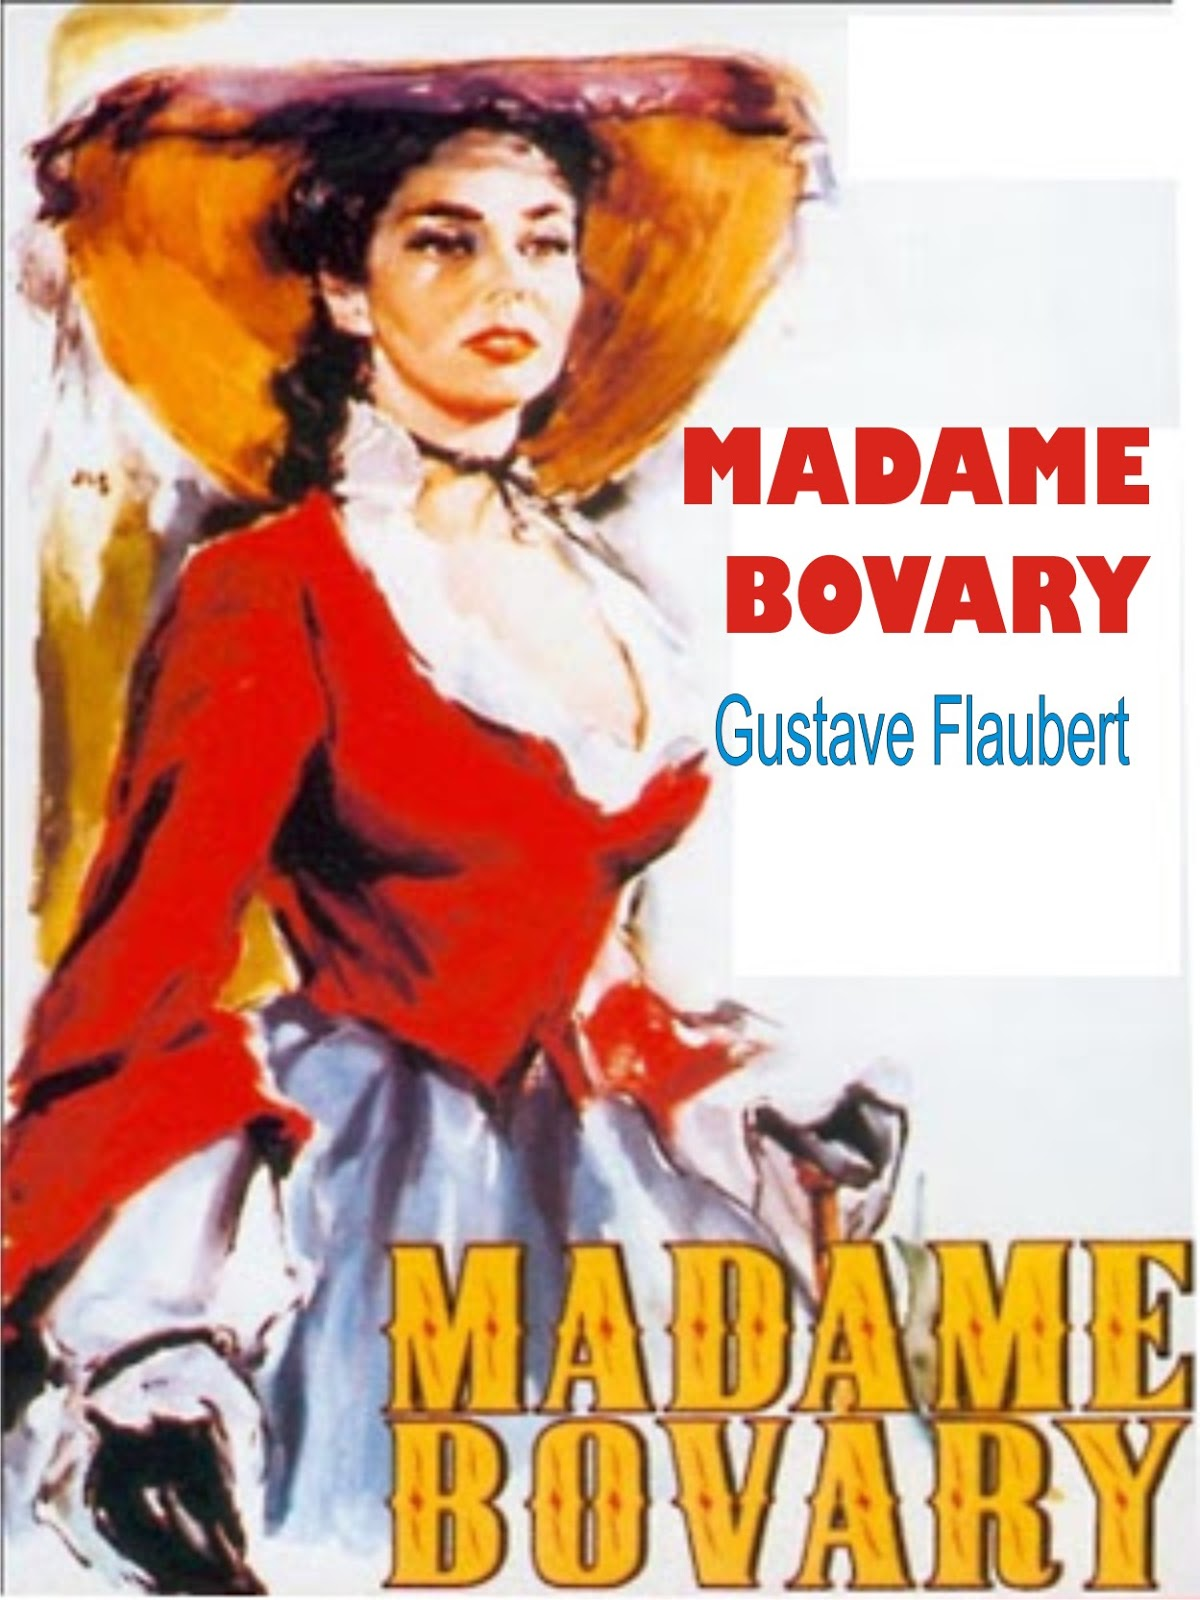 madame bovary thesis Madame bovary was actually a big turning point for flaubert you see, he, like emma, really loved the lush beauty of romanticism, and even wrote his fair share of.